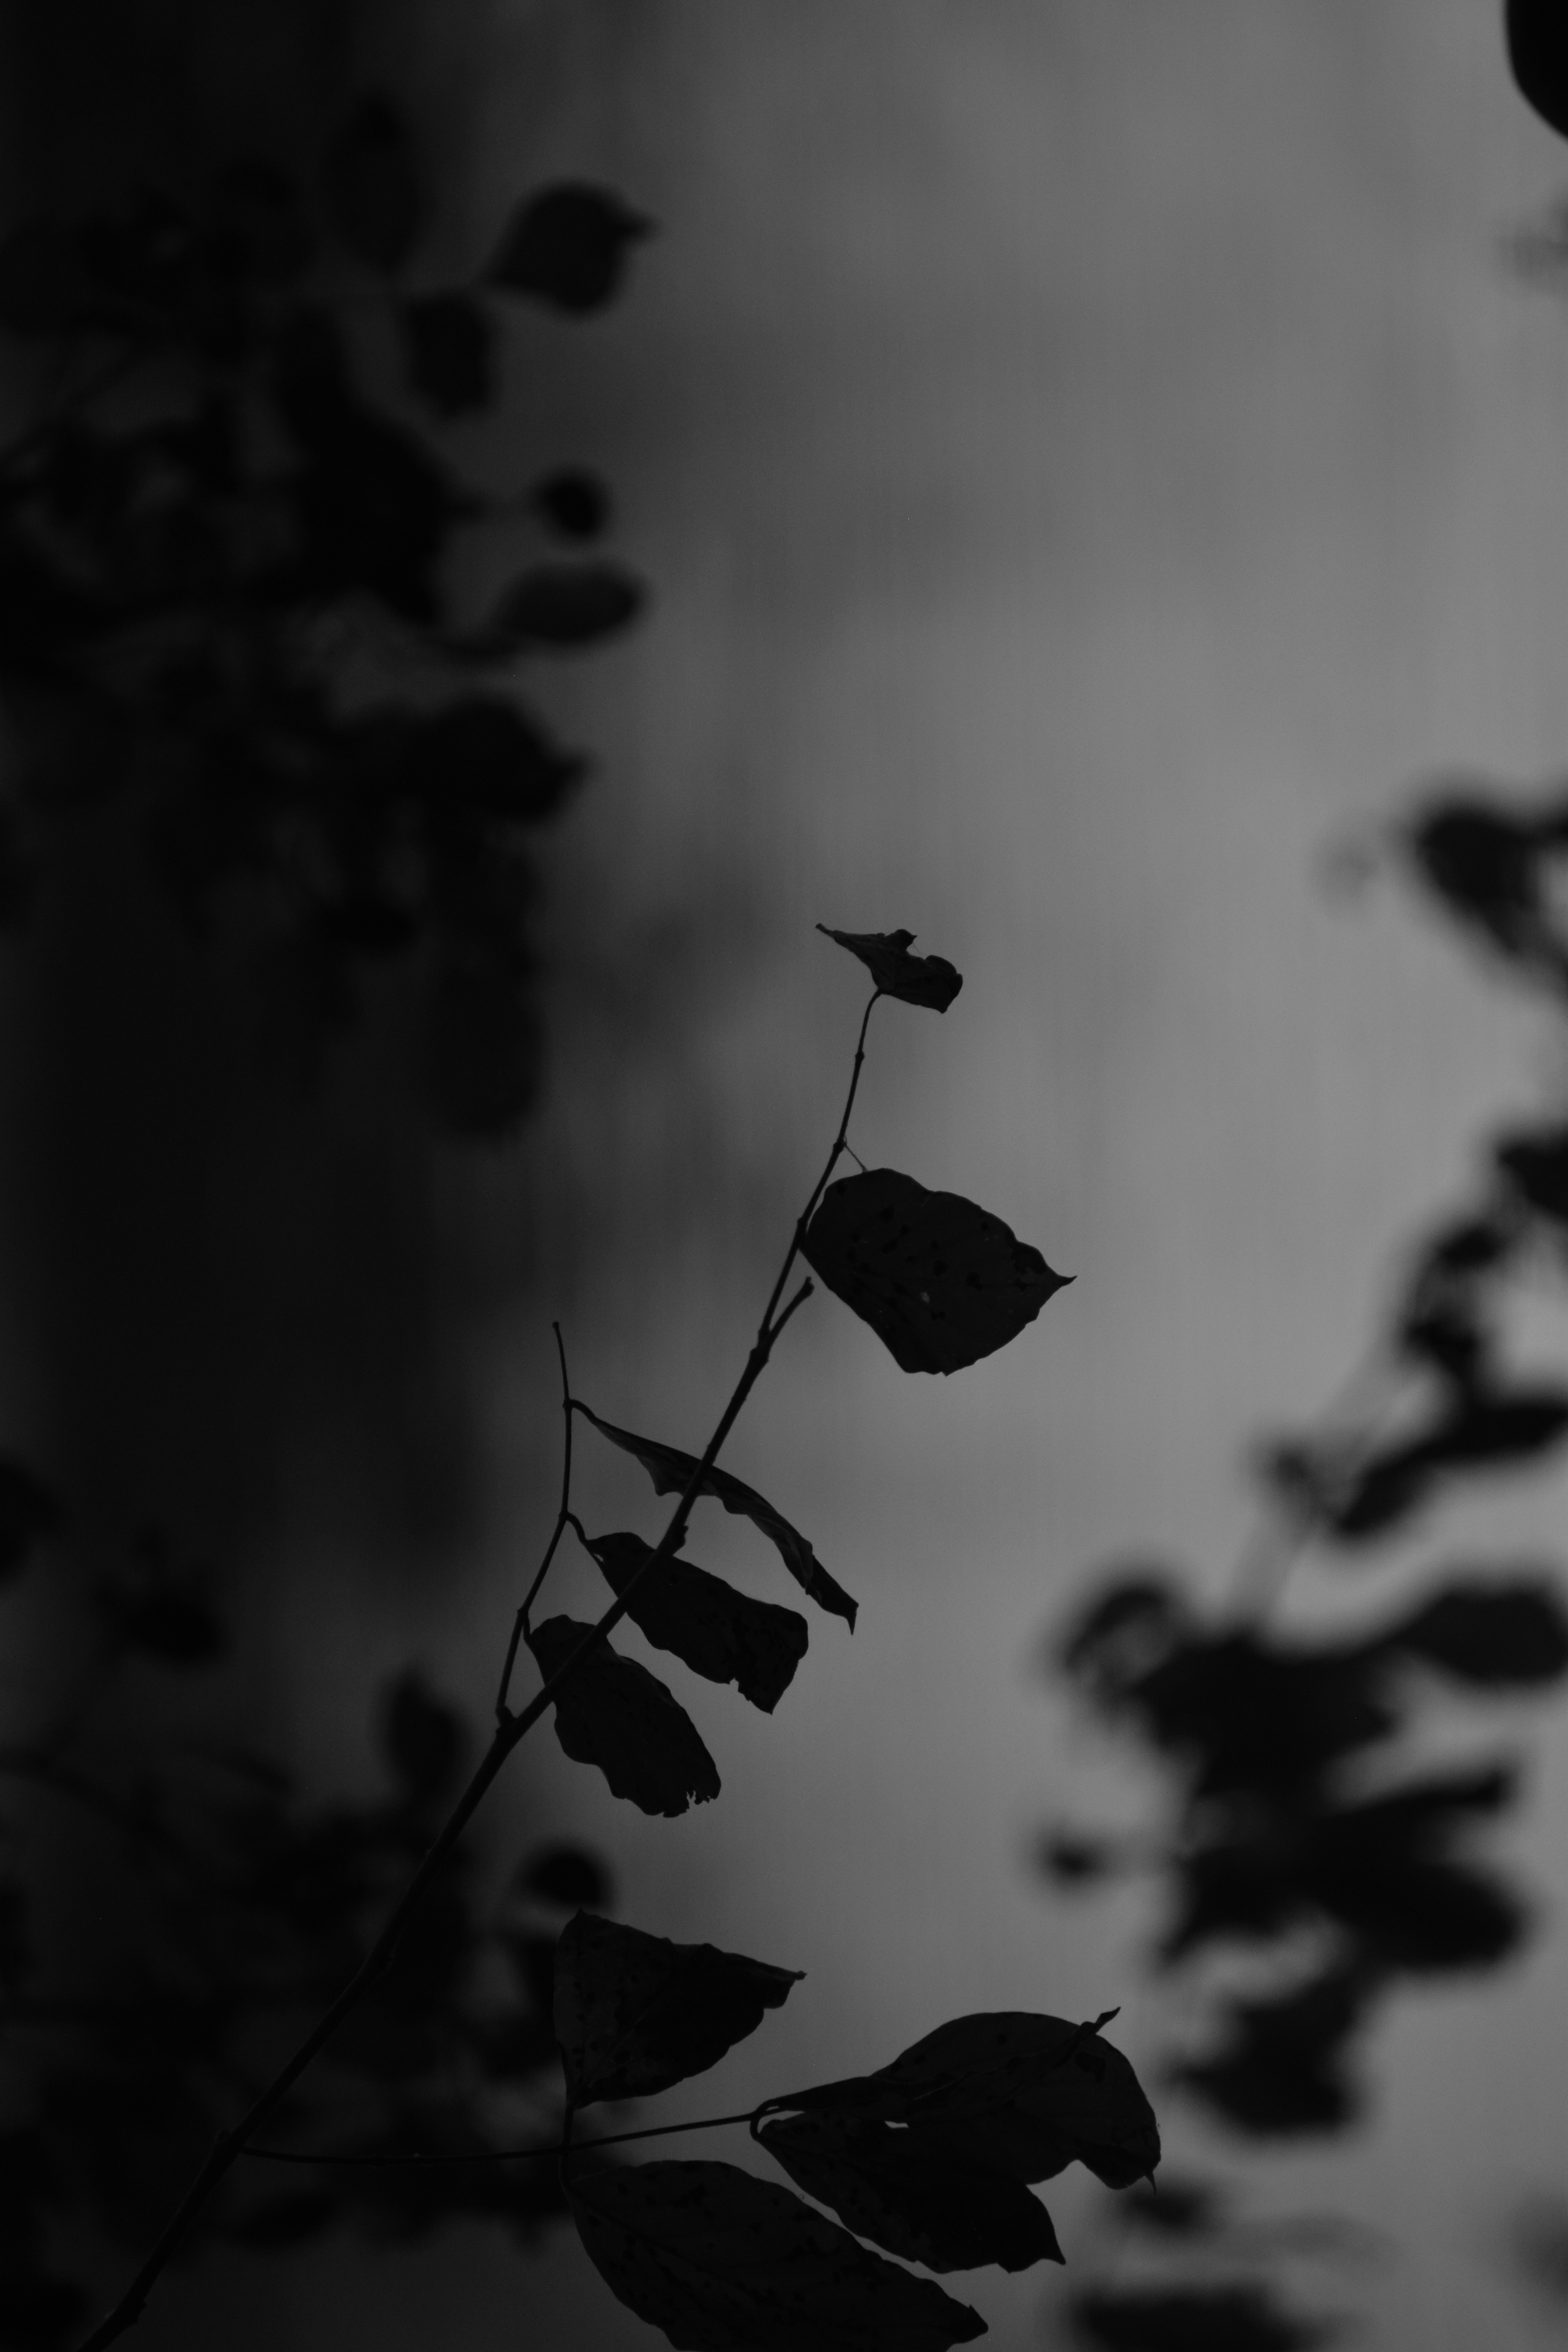 Free stock photo of black and white, dry leaf, light and shadow